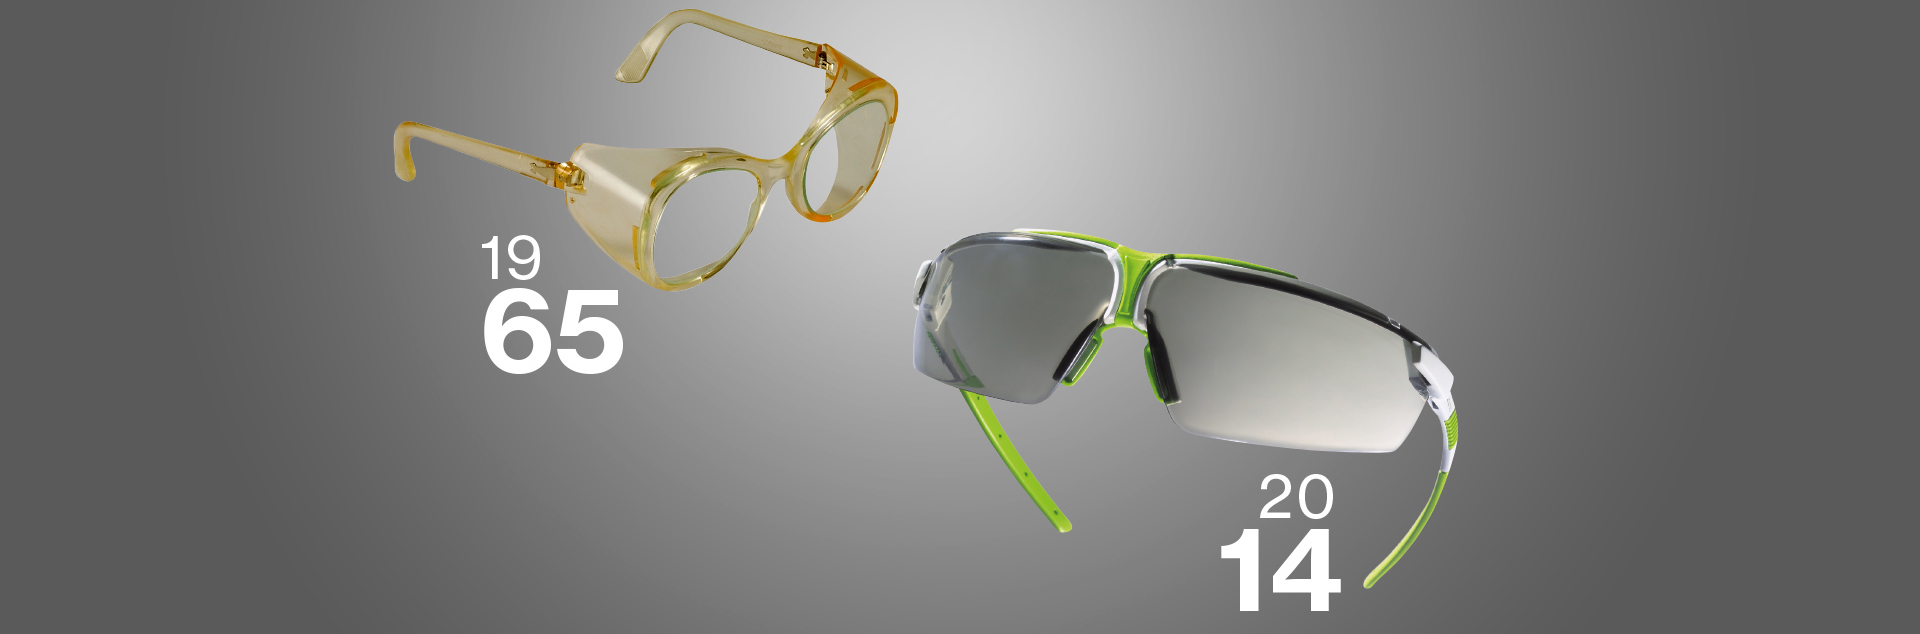 The first safety eyewear.